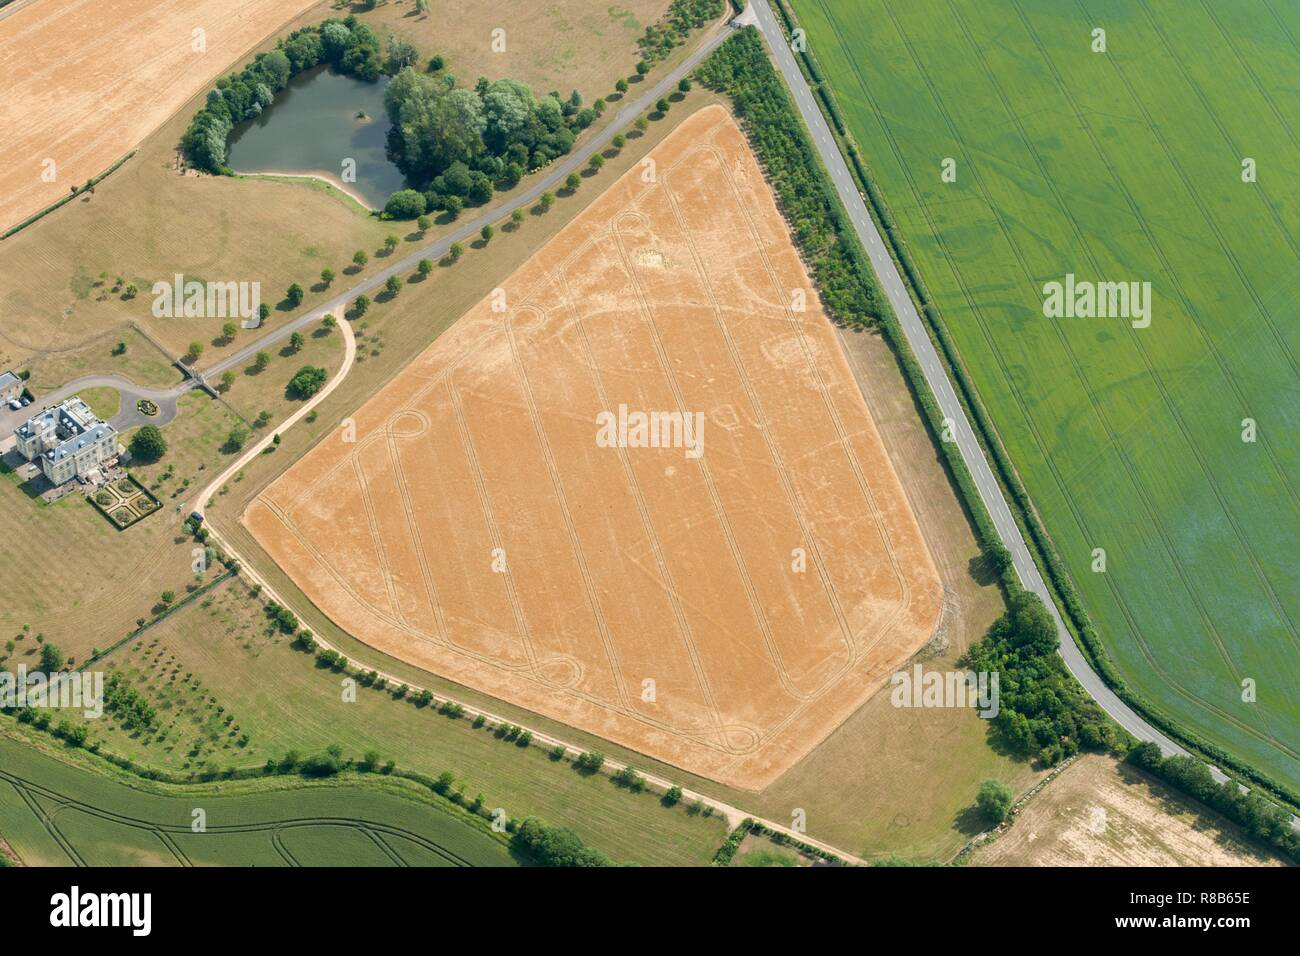 Probable Prehistoric or Roman settlement, near Eynsham, Oxfordshire, 2015. Creator: Historic England Staff Photographer. Stock Photo